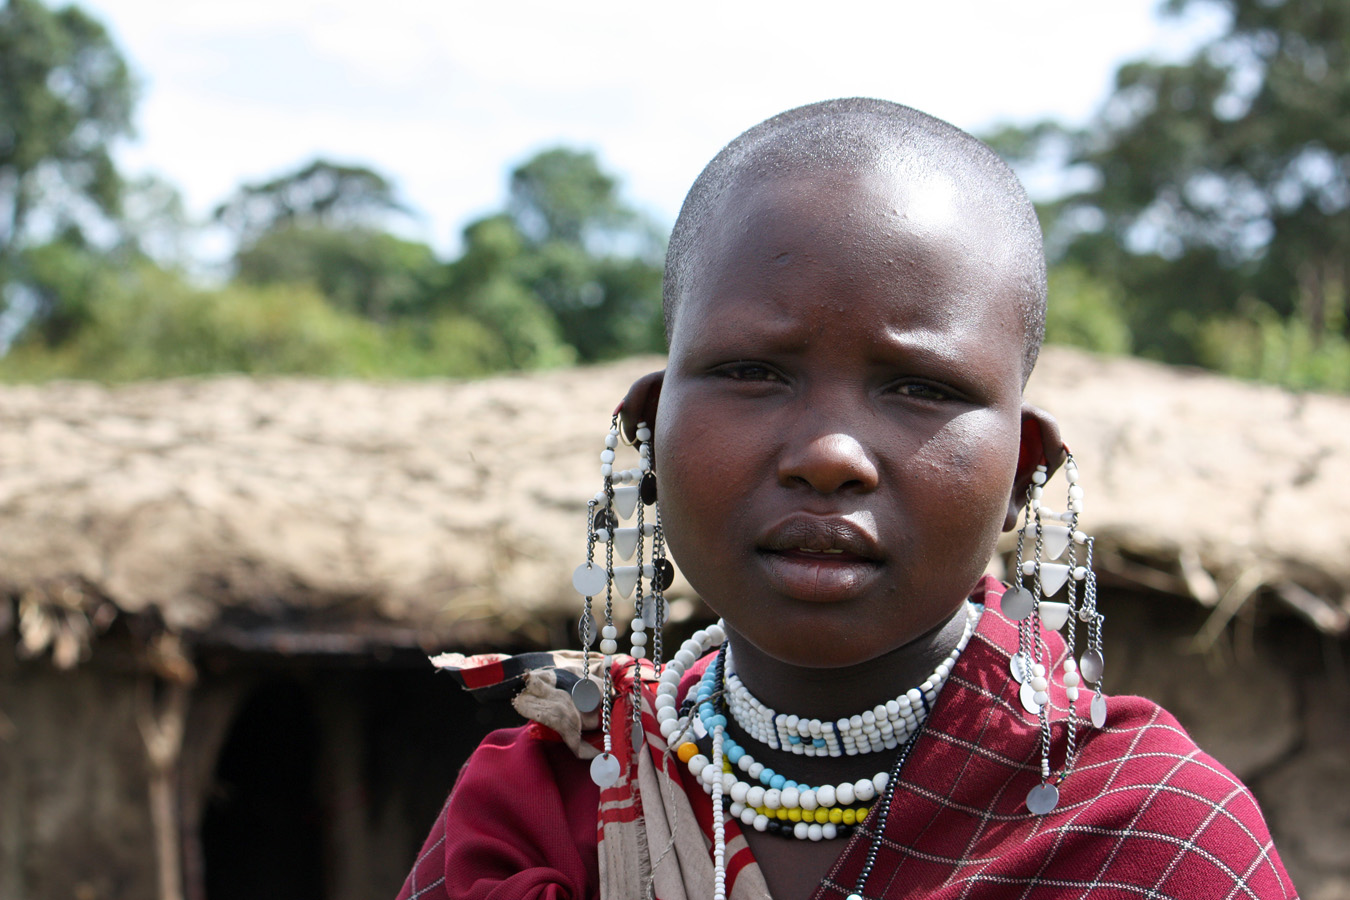 Village girl, Ndutu